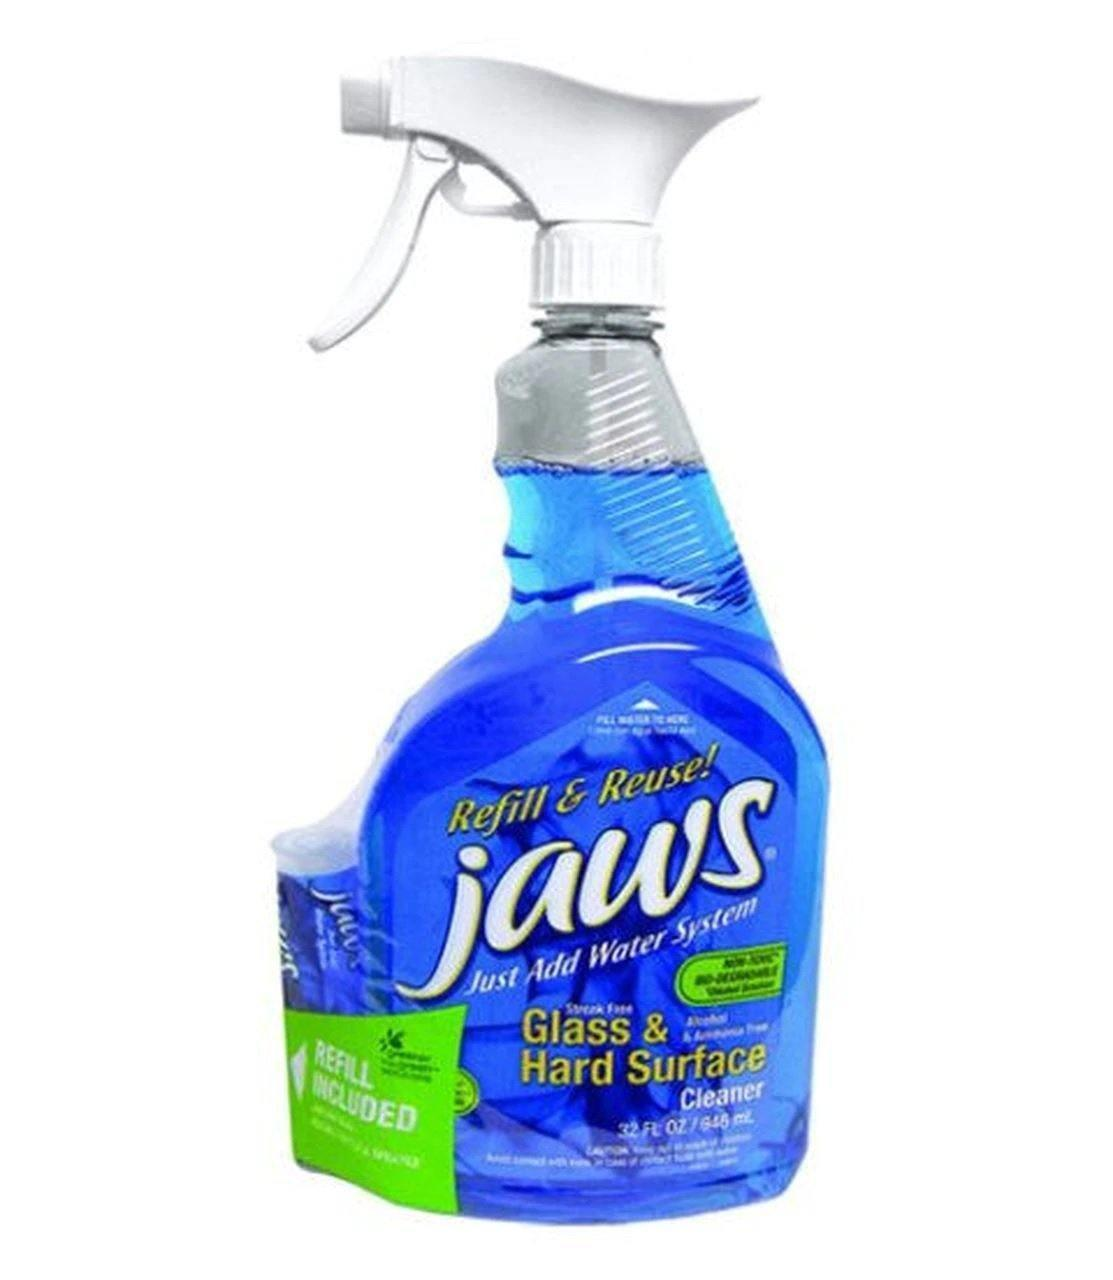 **BULK BUY** Jaws Glass & Hard Surface Cleaner/Degreaser - 6x 946ml +6x FREE refill cartridge